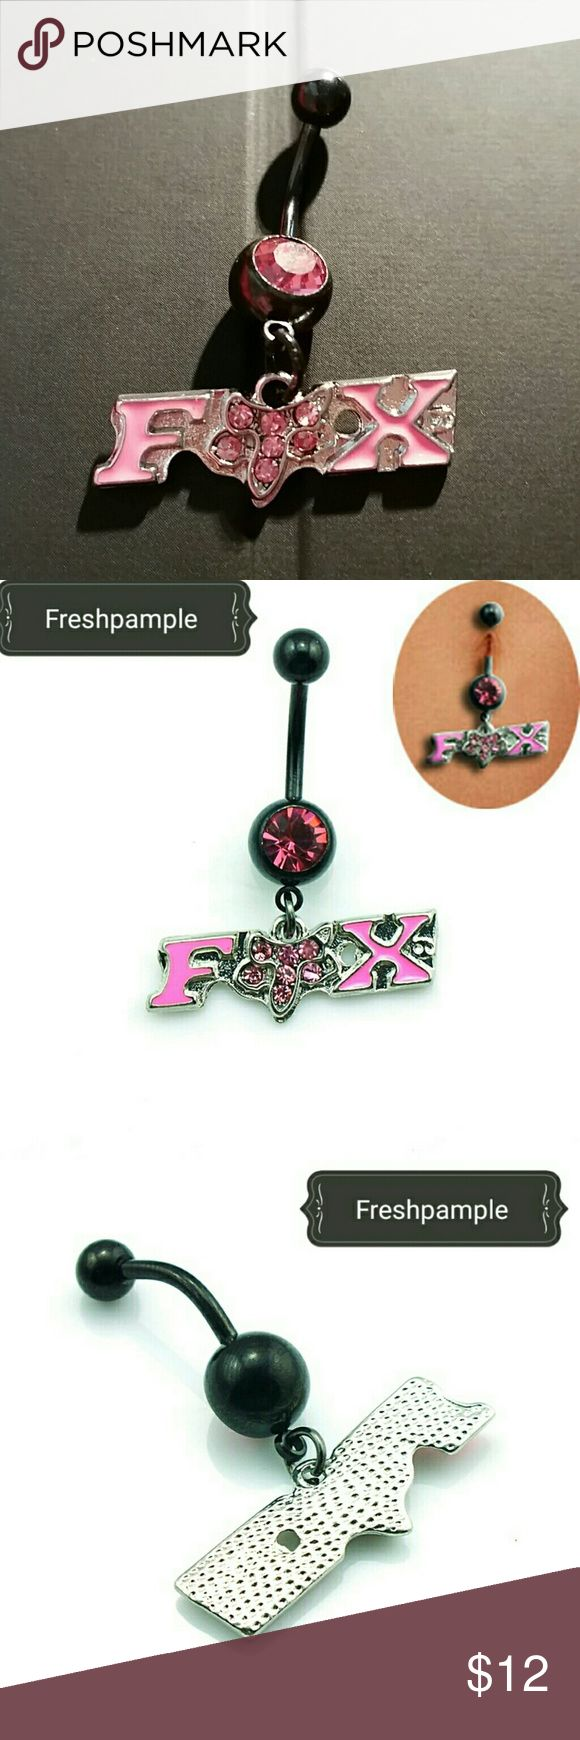 "NEW Fox Racing Black & Pink Crystal Navel Ring Brand new, hot pink cz crystal rhinestone on the bottom & Fox Racing logo dangle charm with hot pink pave crystal fox, standard 14g, 7/16"" black surgical grade stainless steel curved barbell / banana for navel (belly button) piercings. Shown in last pic with a dime for size reference.   Lots more new body jewelry in my closet!  Thank you for visiting, and happy poshing!! :)  SORRY, NO TRADES  BUNDLE & SAVE! Jewelry"